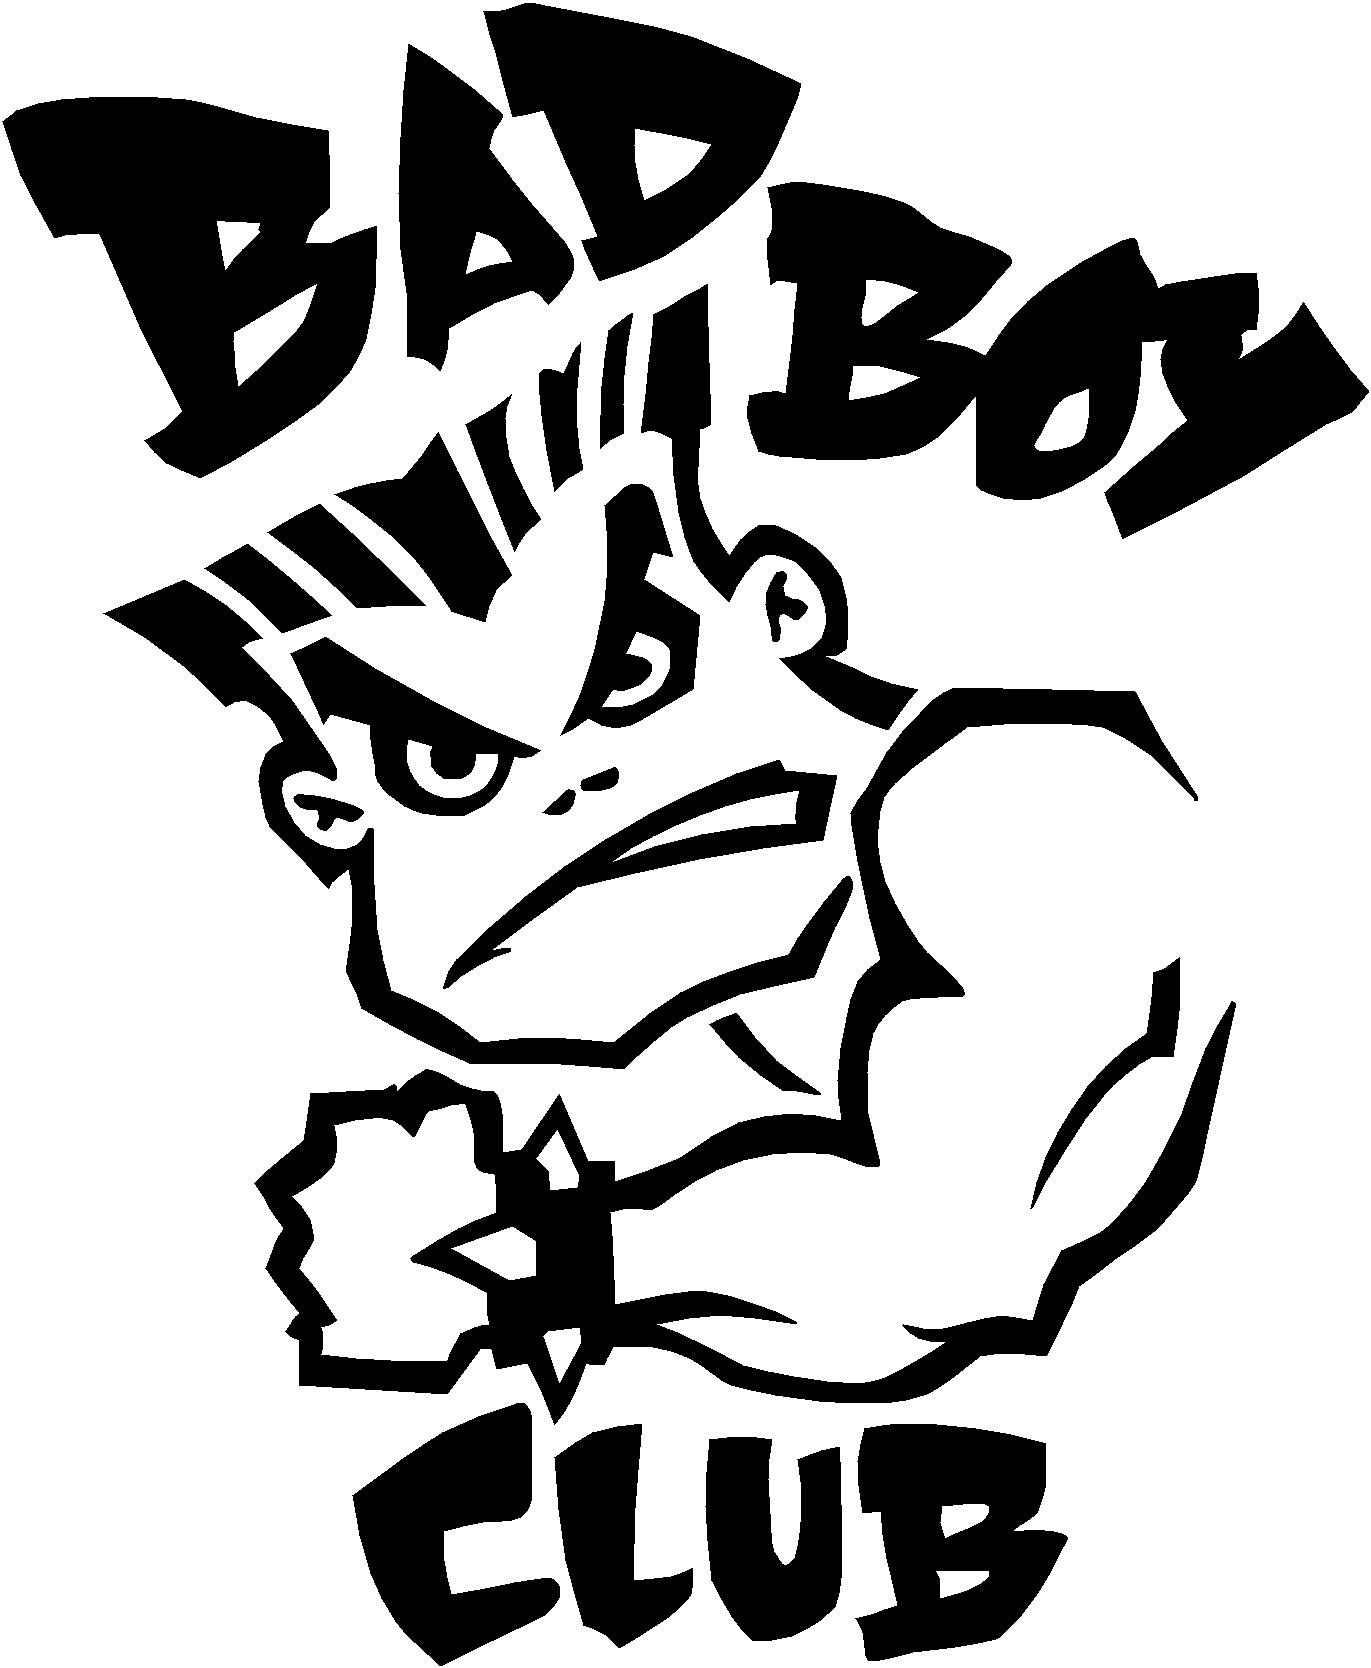 00114 bad boy club from ocean palm graphics